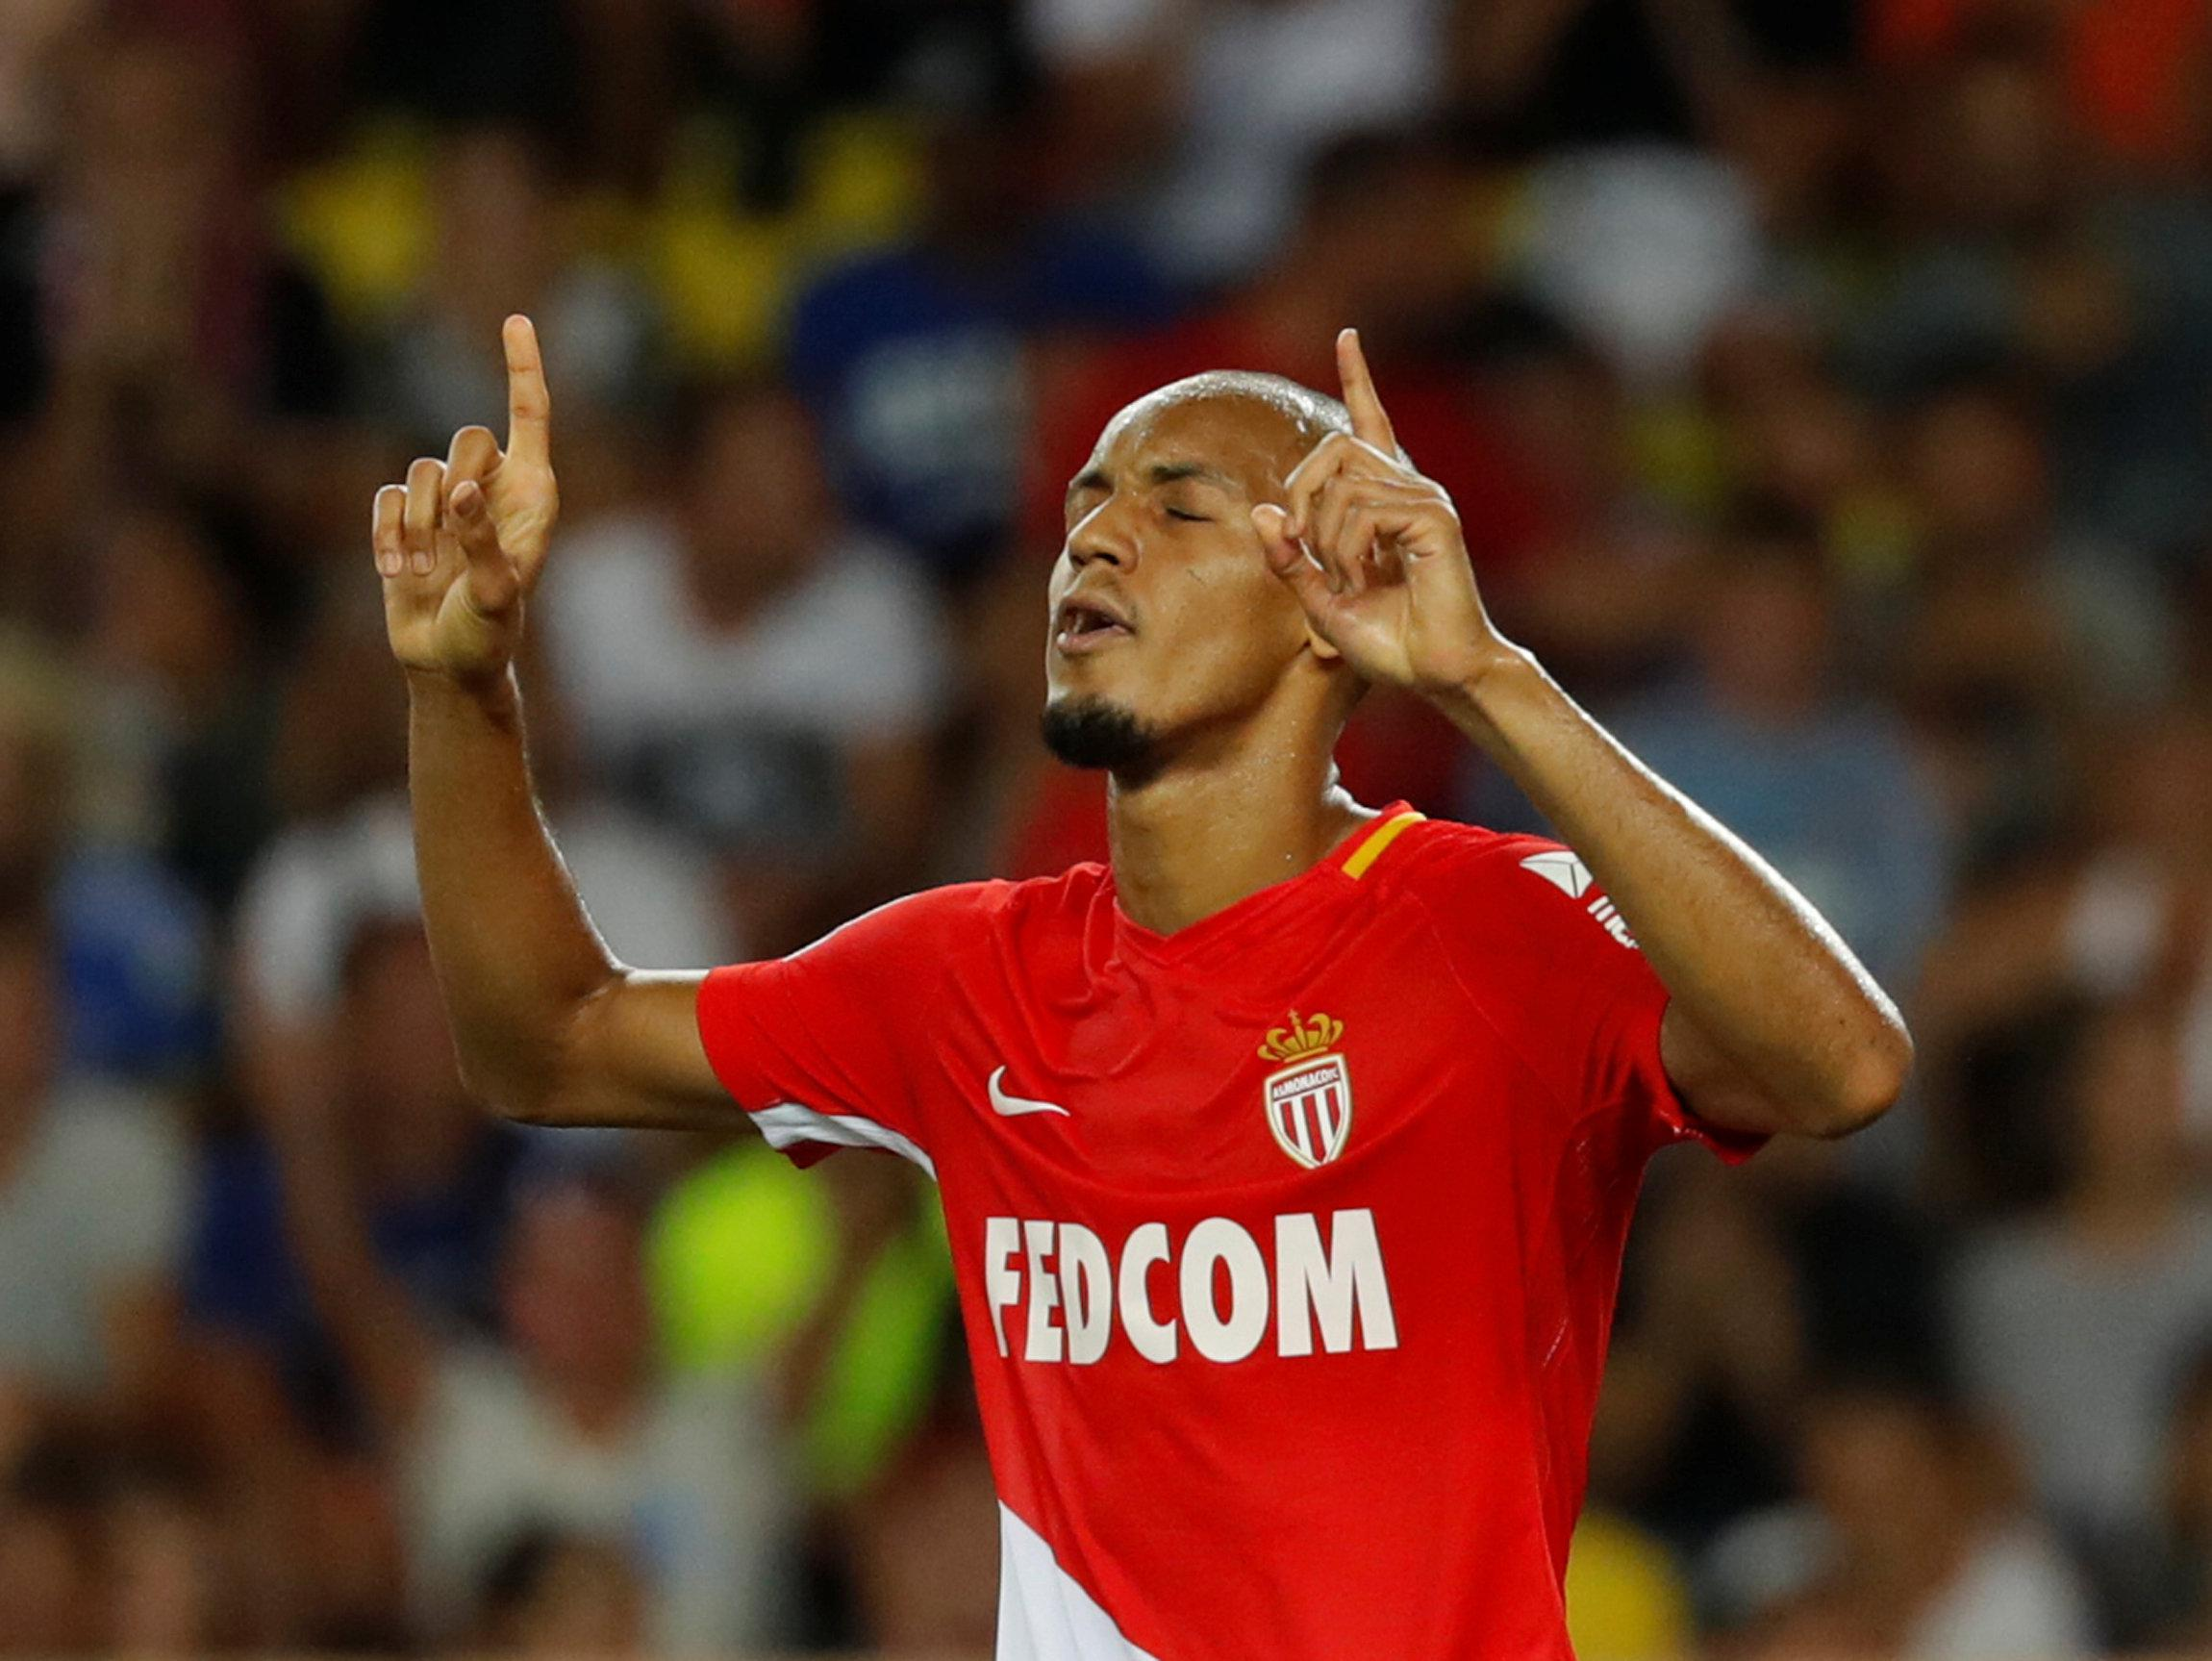 Fabinho could be next of the Ligue 1 winners to leave